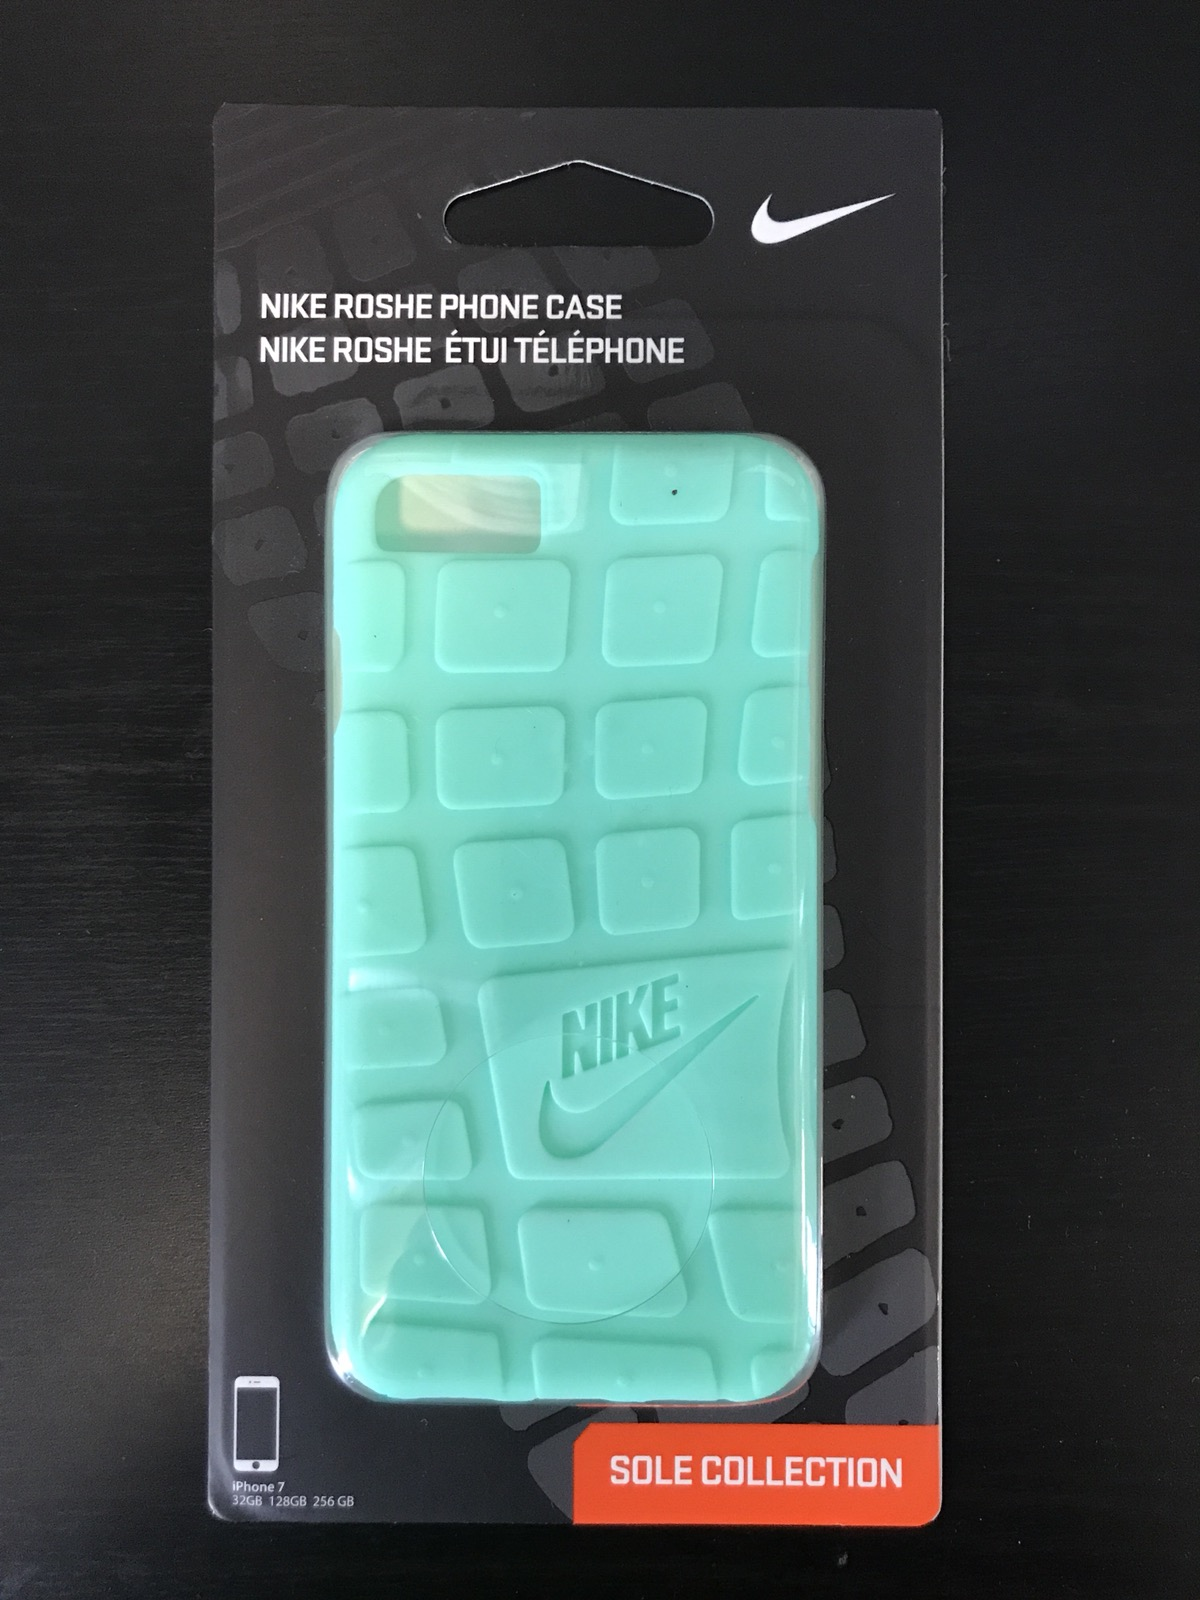 74bd898afa73 Nike Roshe Phone Case Size one size - Miscellaneous for Sale - Grailed